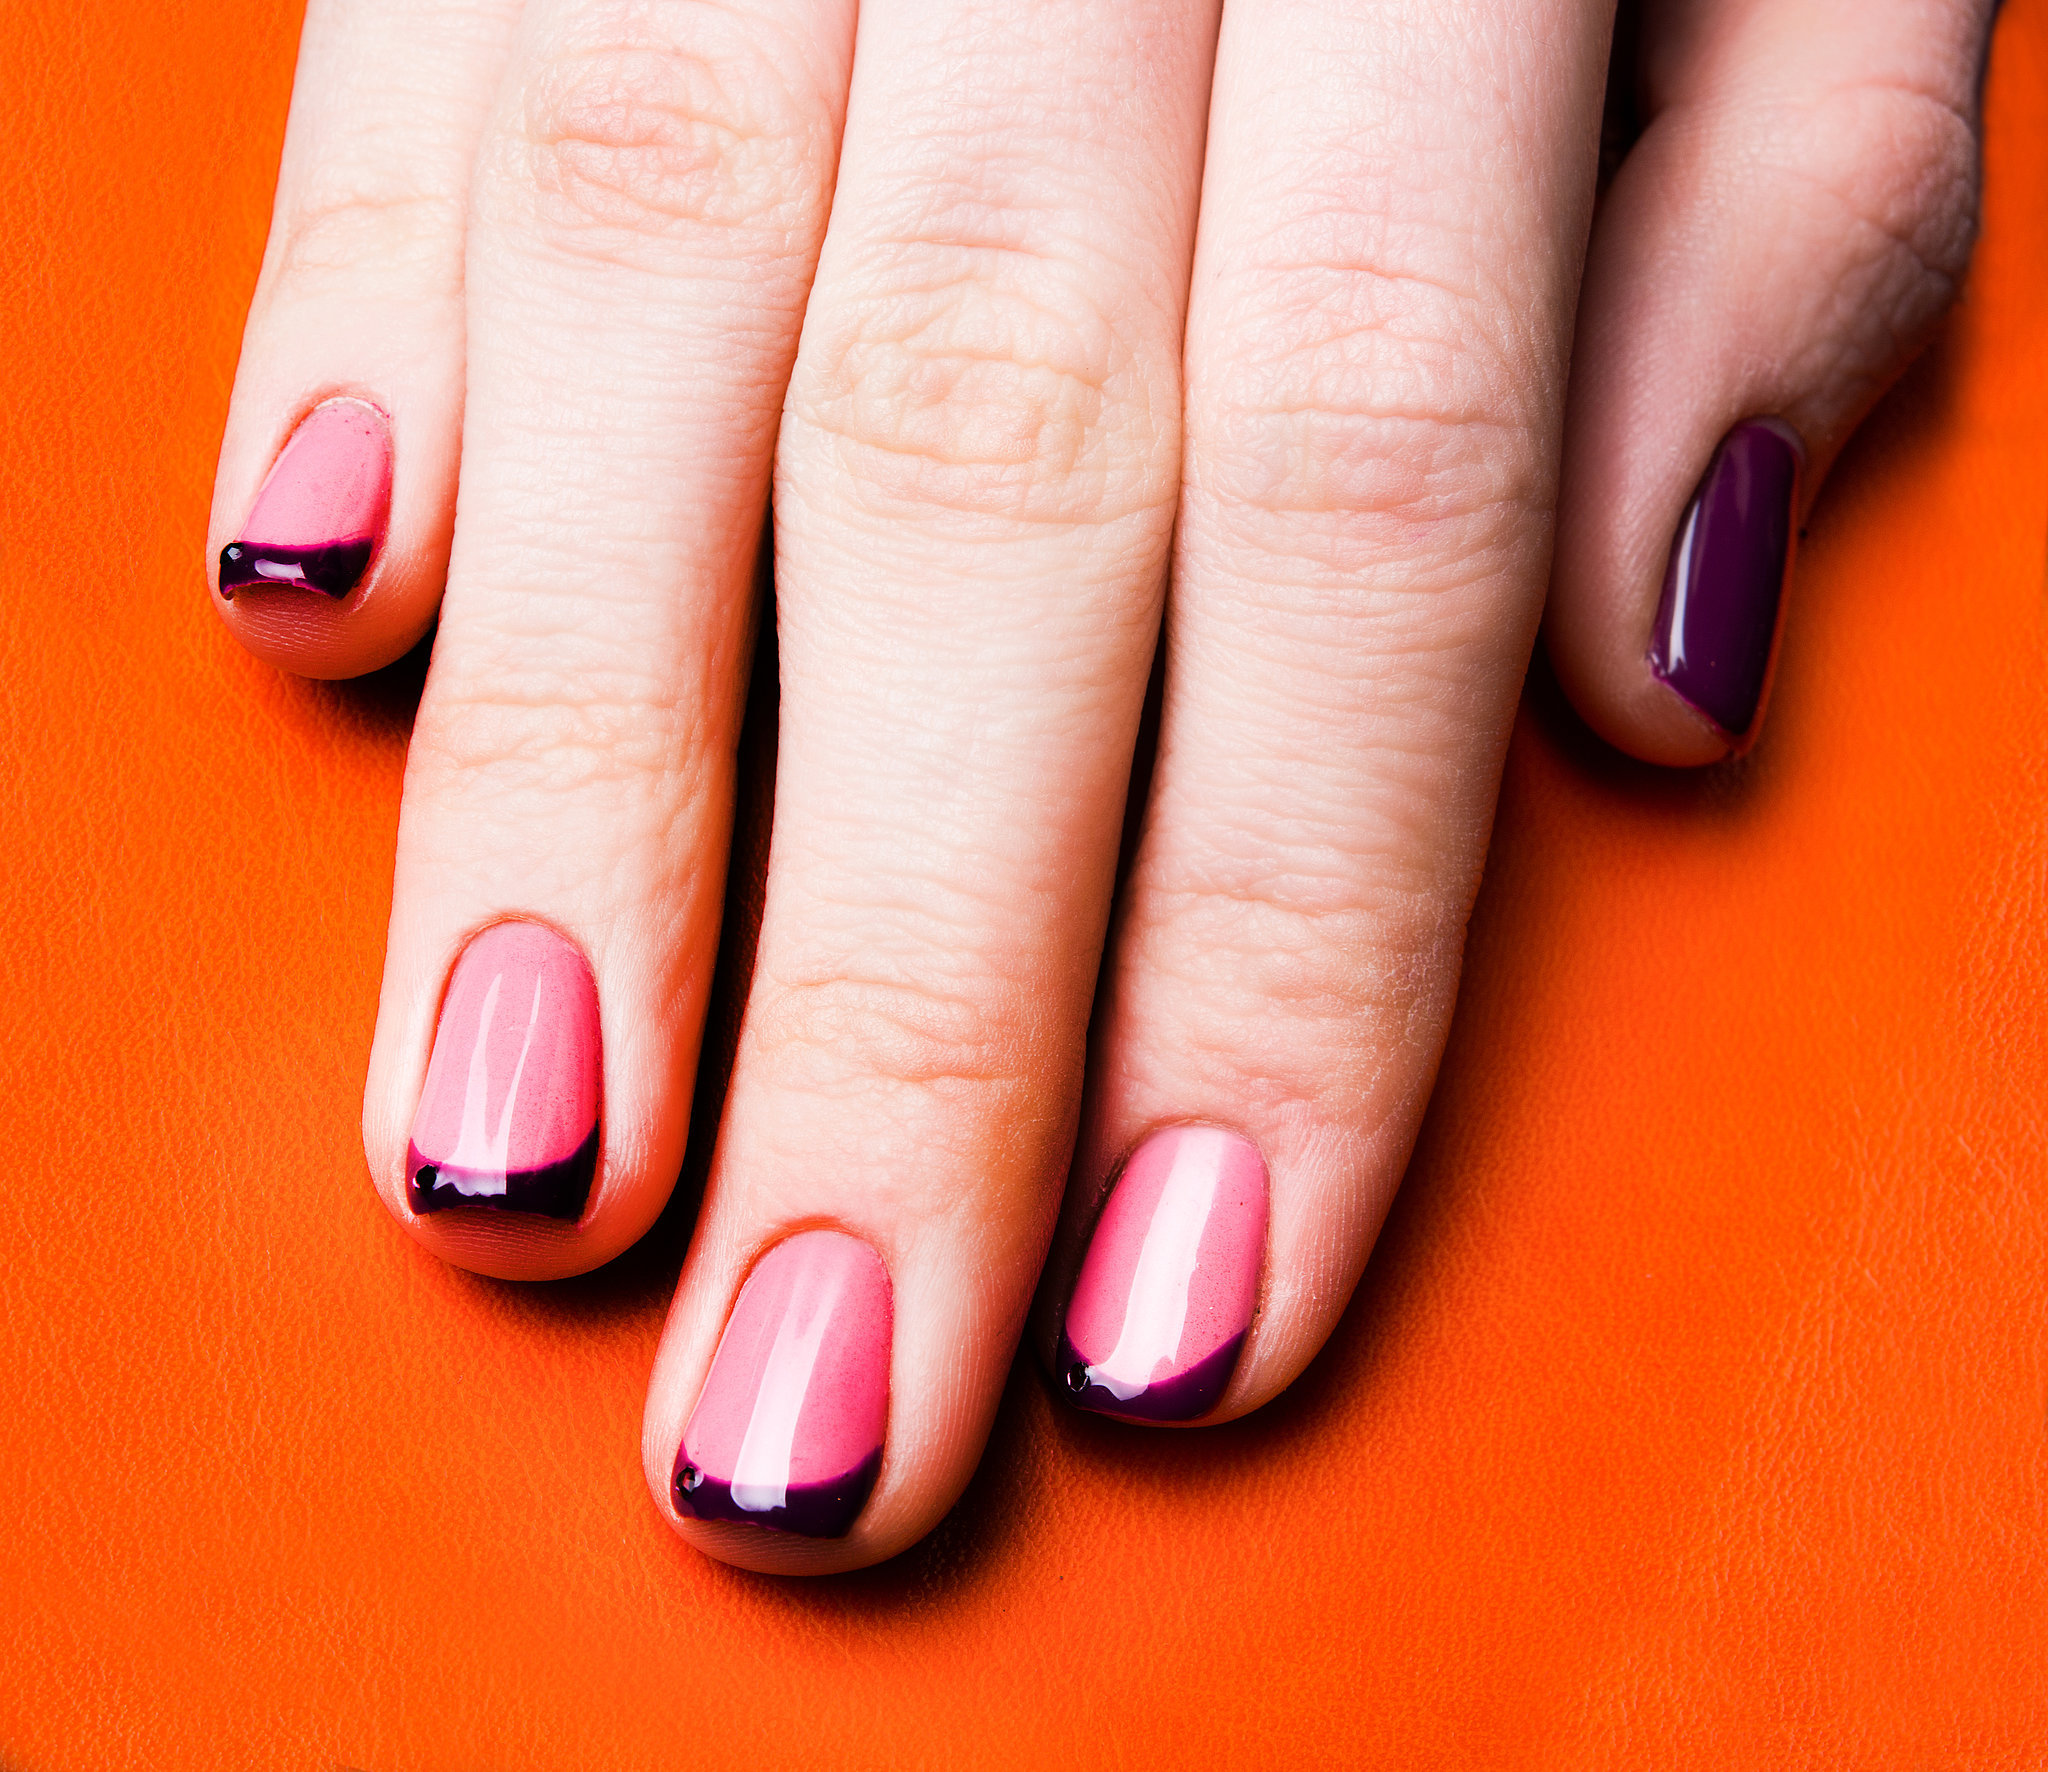 Gel Manicure Tips | POPSUGAR Beauty